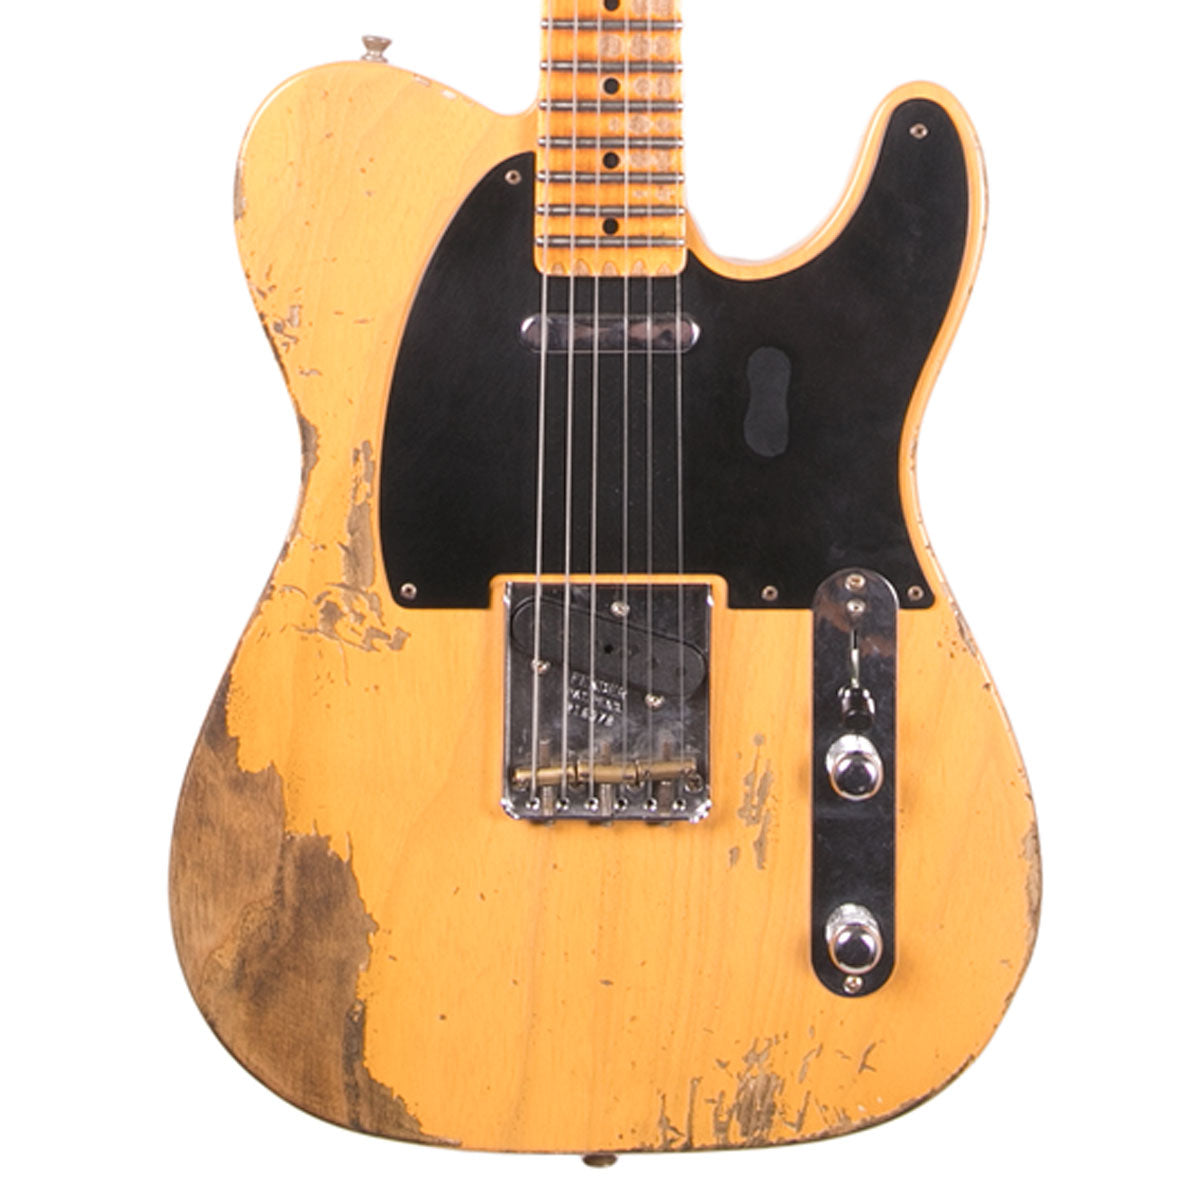 Fender Custom Shop - 1953 Heavy Relic Telecaster - Butterscotch Blonde | Lucky Fret Music Co.